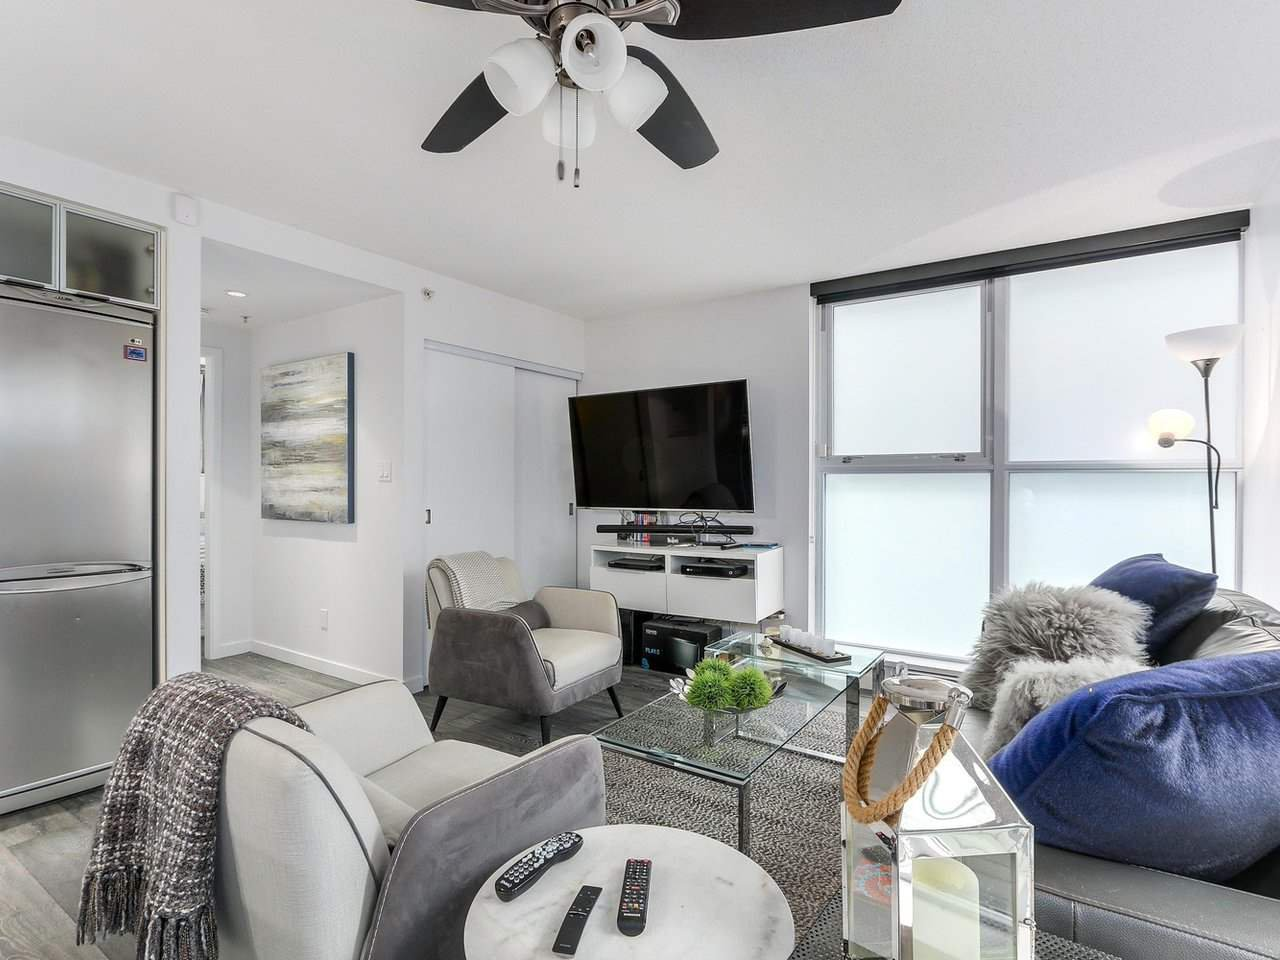 Photo 7: Photos: 217 168 POWELL Street in Vancouver: Downtown VE Condo for sale (Vancouver East)  : MLS®# R2386644